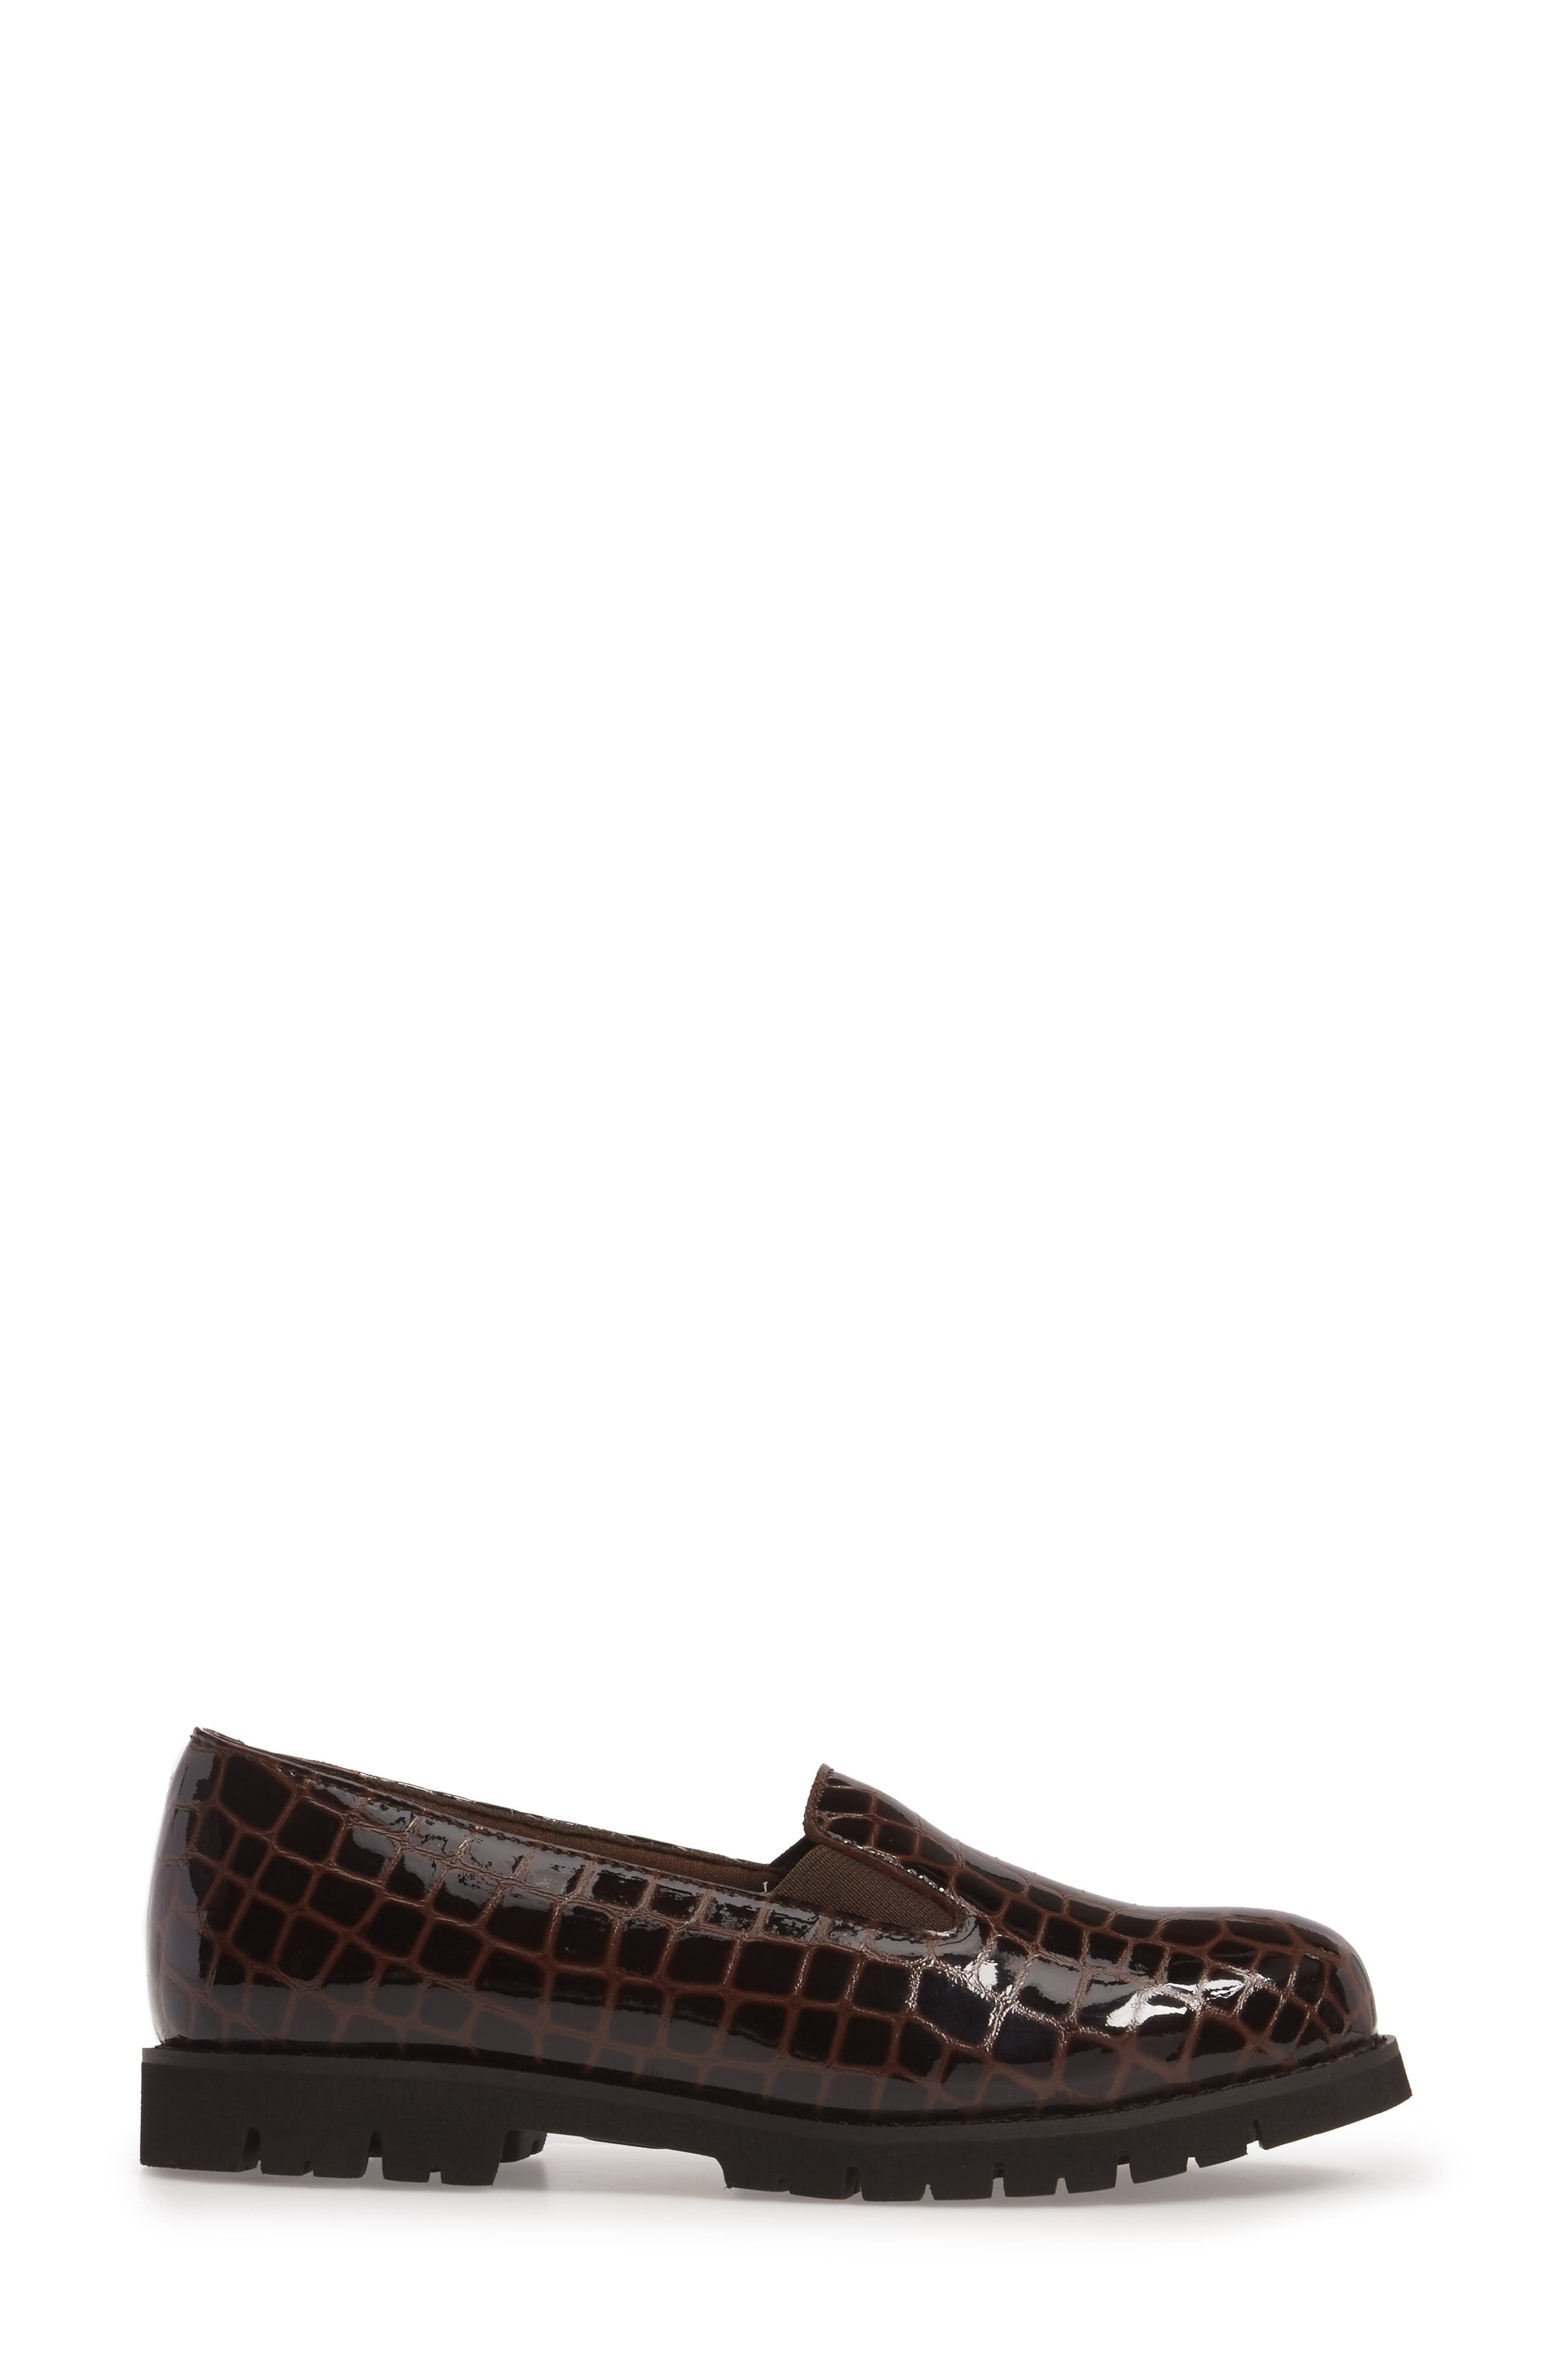 Pearl Loafer,                             Alternate thumbnail 3, color,                             Brown Patent Leather